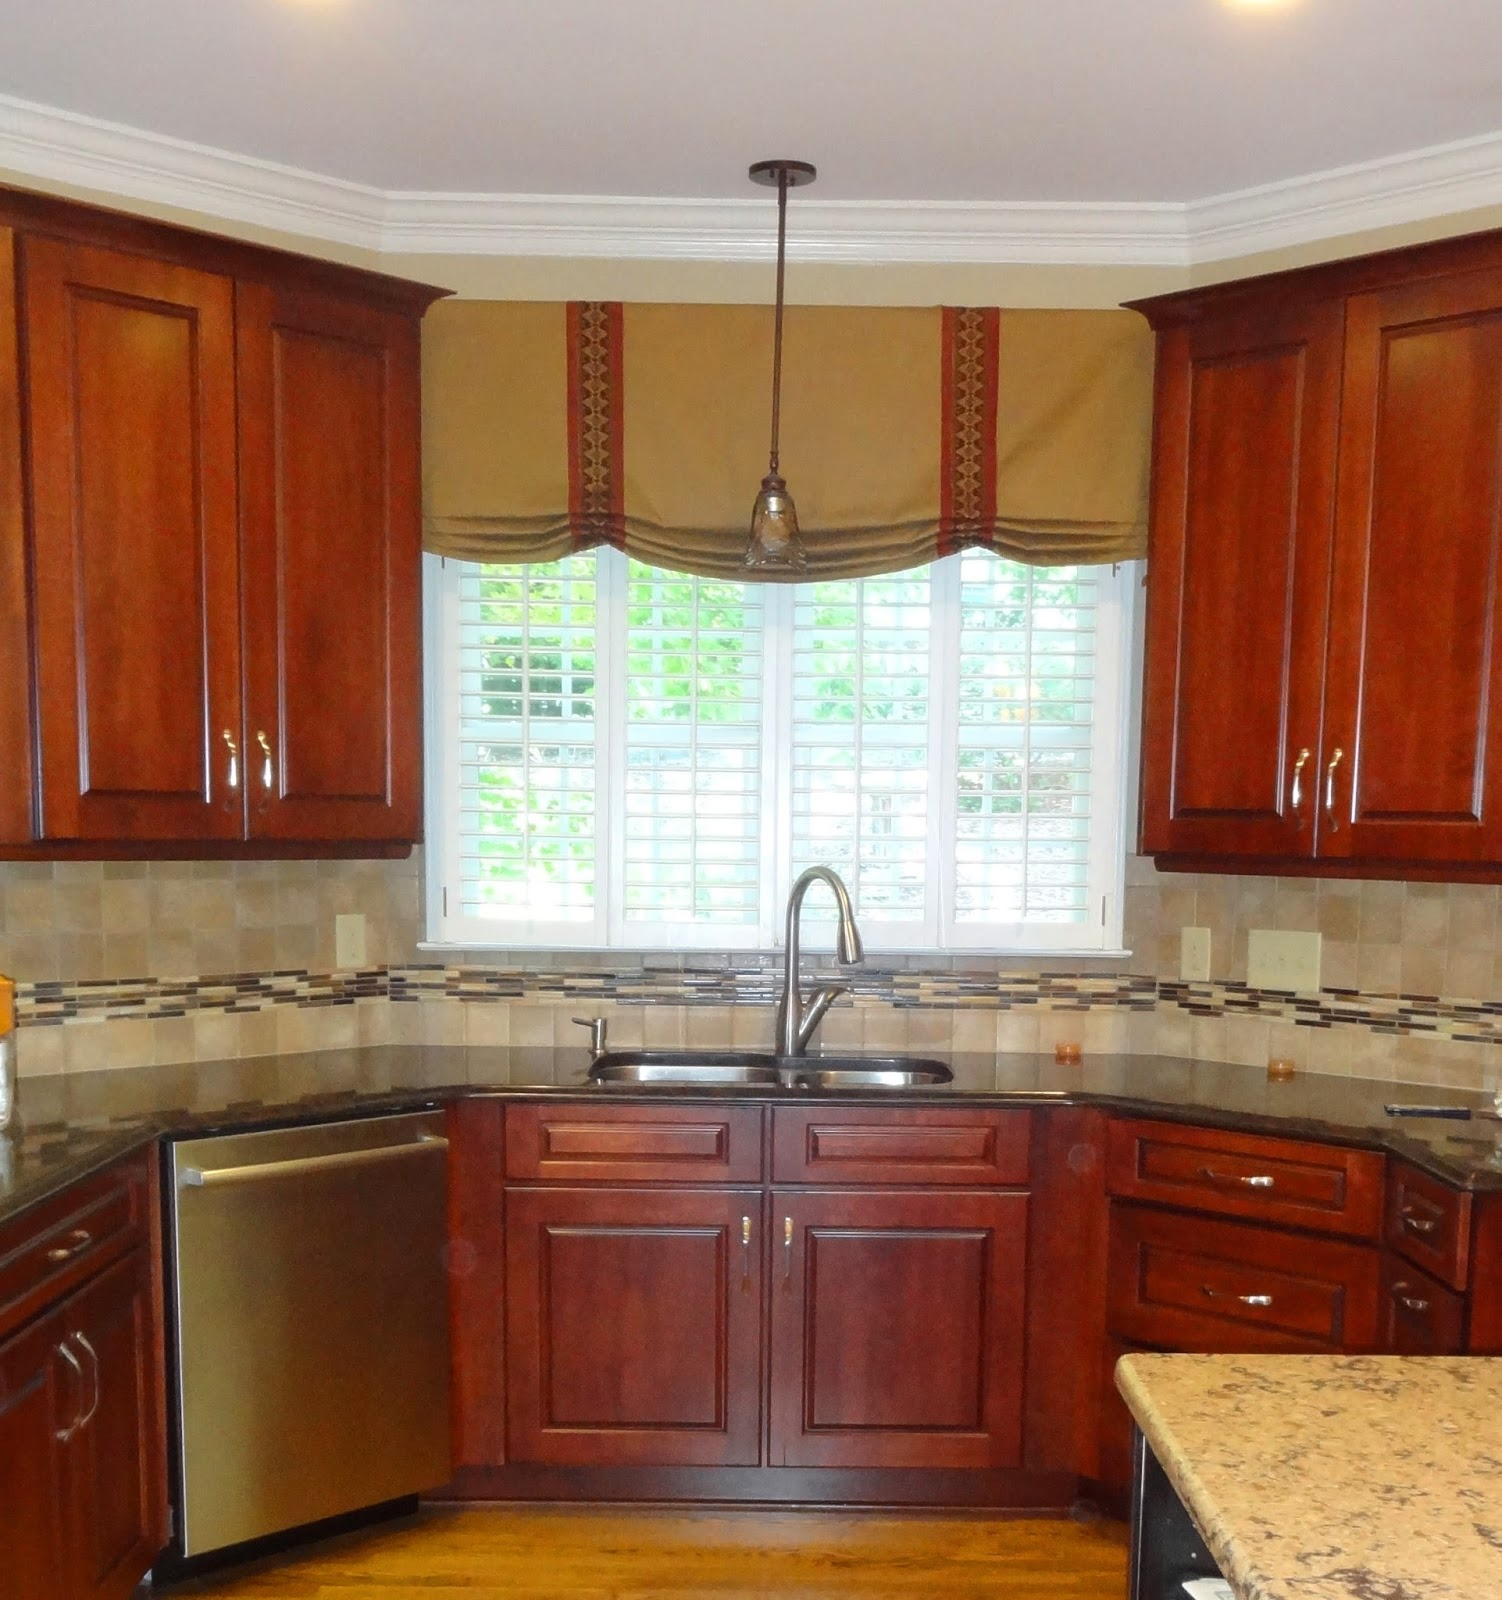 Curtain Designs For Kitchen Windows: Window Treatments For Kitchen Ideas